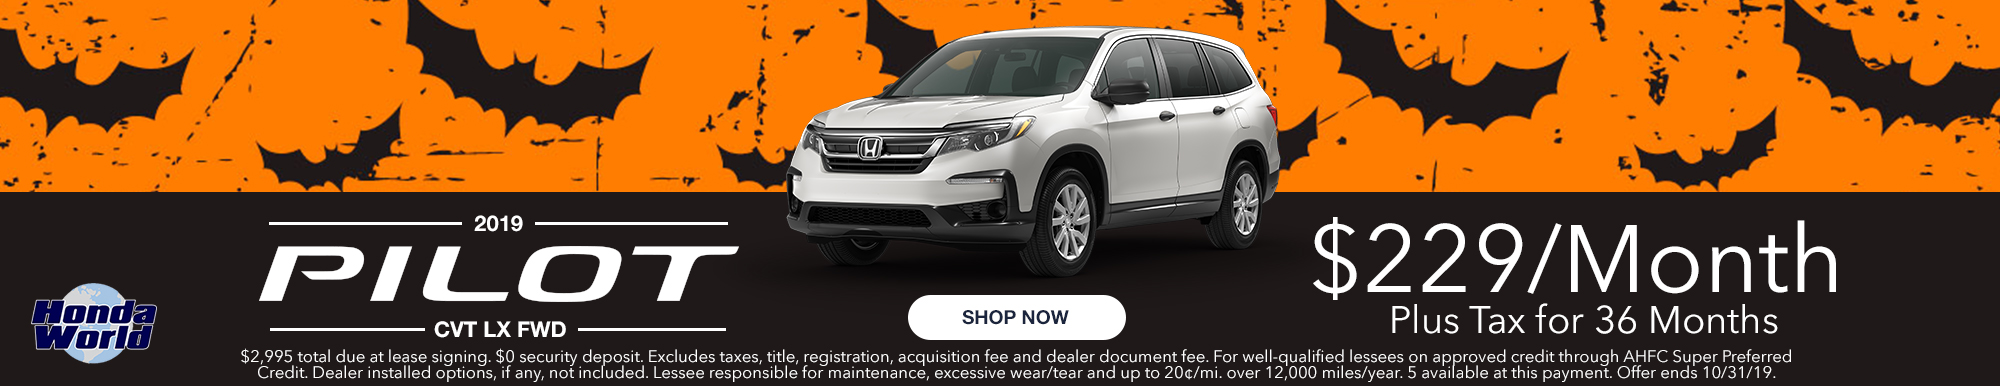 2019 Honda Pilot LX Lease Offer $229 a month